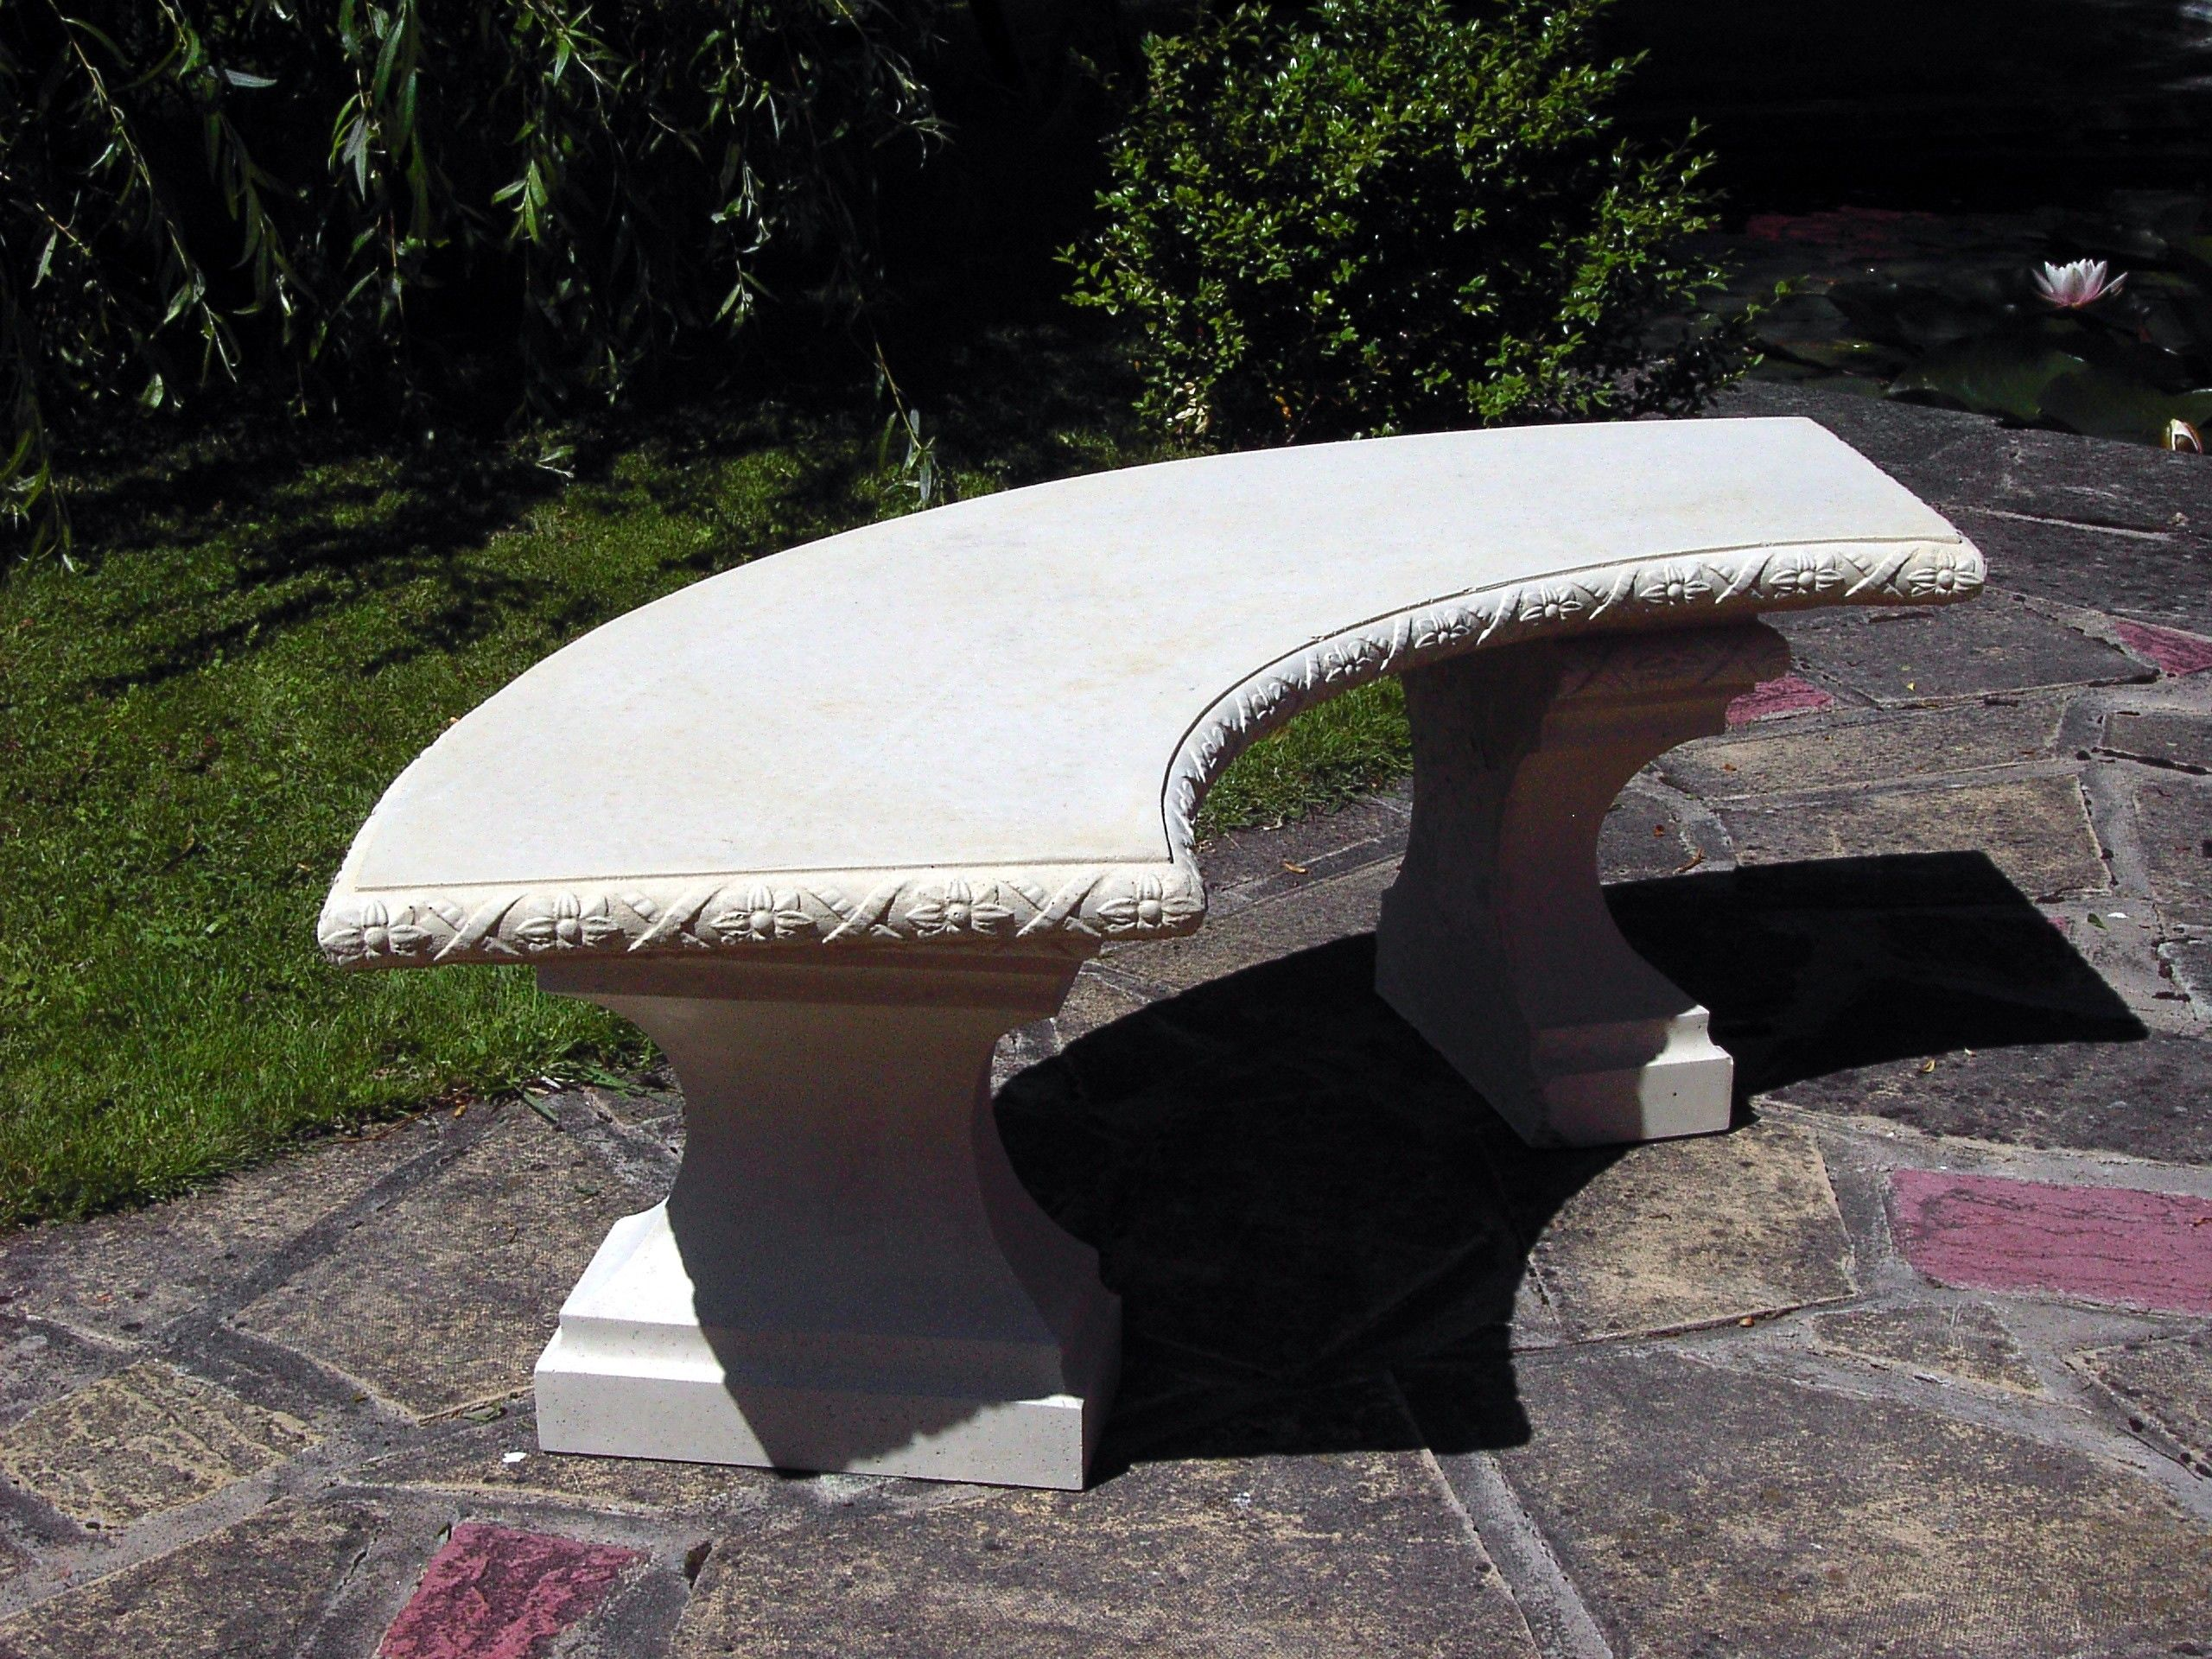 Concrete Garden Benches Are Very Much In Demand. Concrete Garden Benches  Are Very Diverse, As They Come In A Variety Of Shapes And Colors.